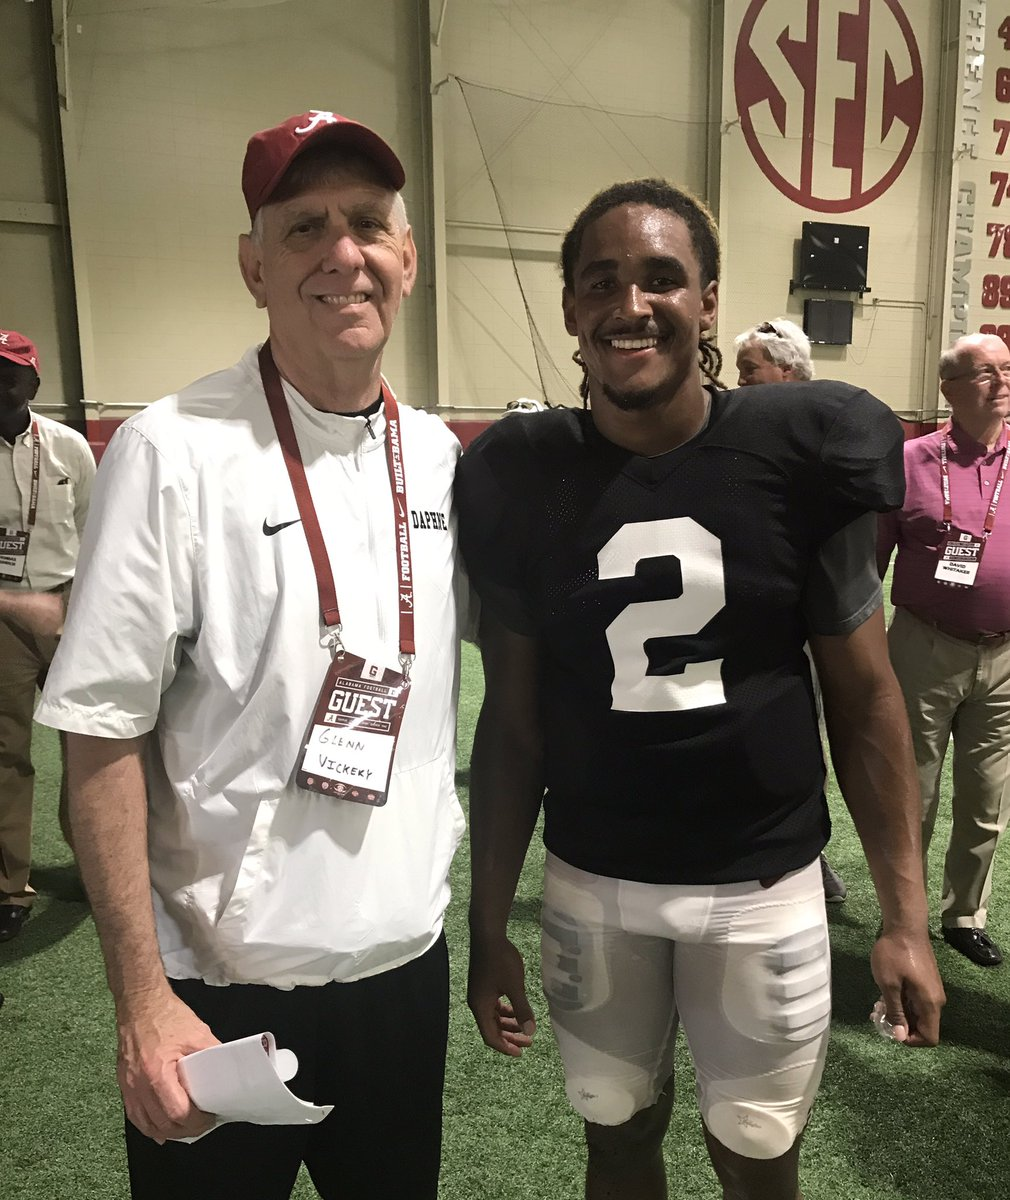 Ran in to 2 pretty good QB&#39;s today in Tuscaloosa @JalenHurts &amp; Walter Lewis #leaders #quality #past&amp;present<br>http://pic.twitter.com/MVsvX8rOAl